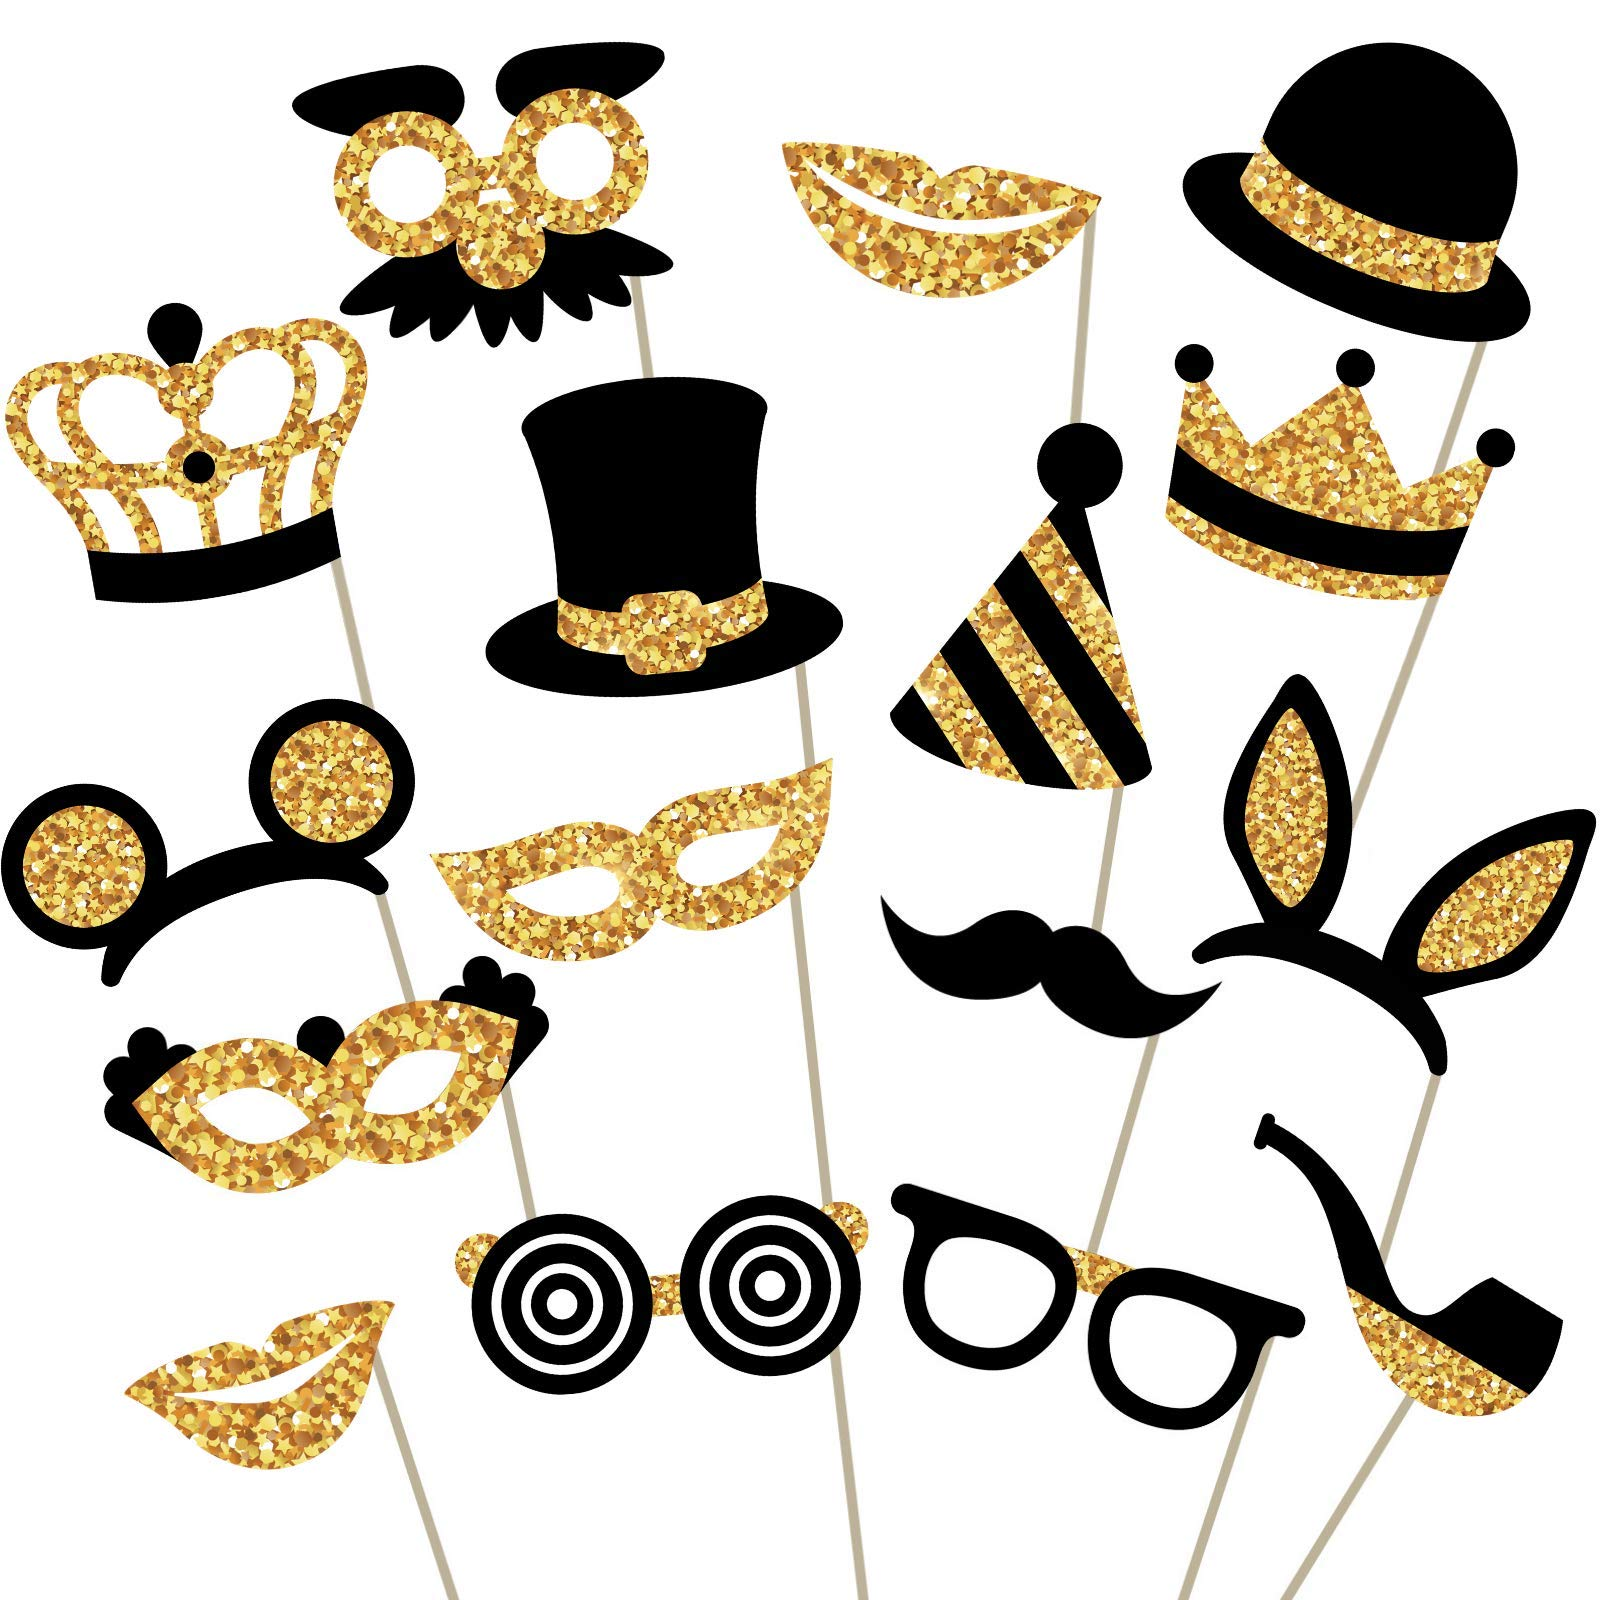 Gold Wedding Party 8 Photo Booth Props Gold Wedding Photo Props Party Photo Booth Props Let/'s Celebrate Photo Props Christmas Party